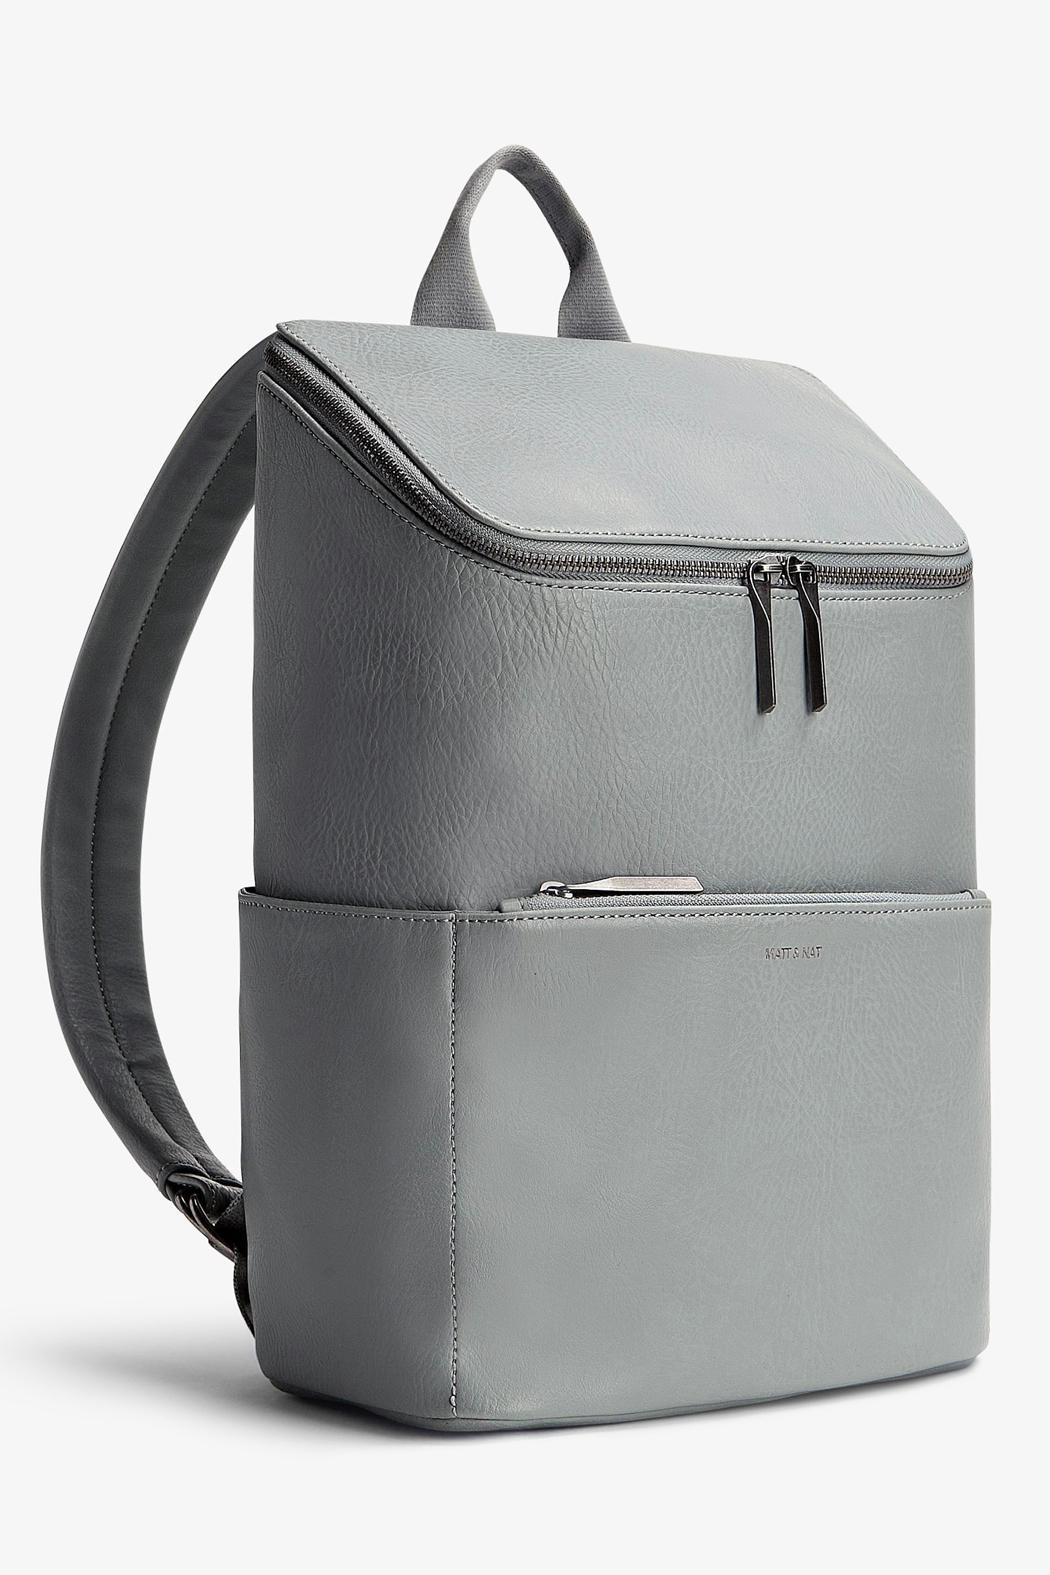 Matt & Nat Vegan Leather Backpack from Vancouver by Bodacious ...